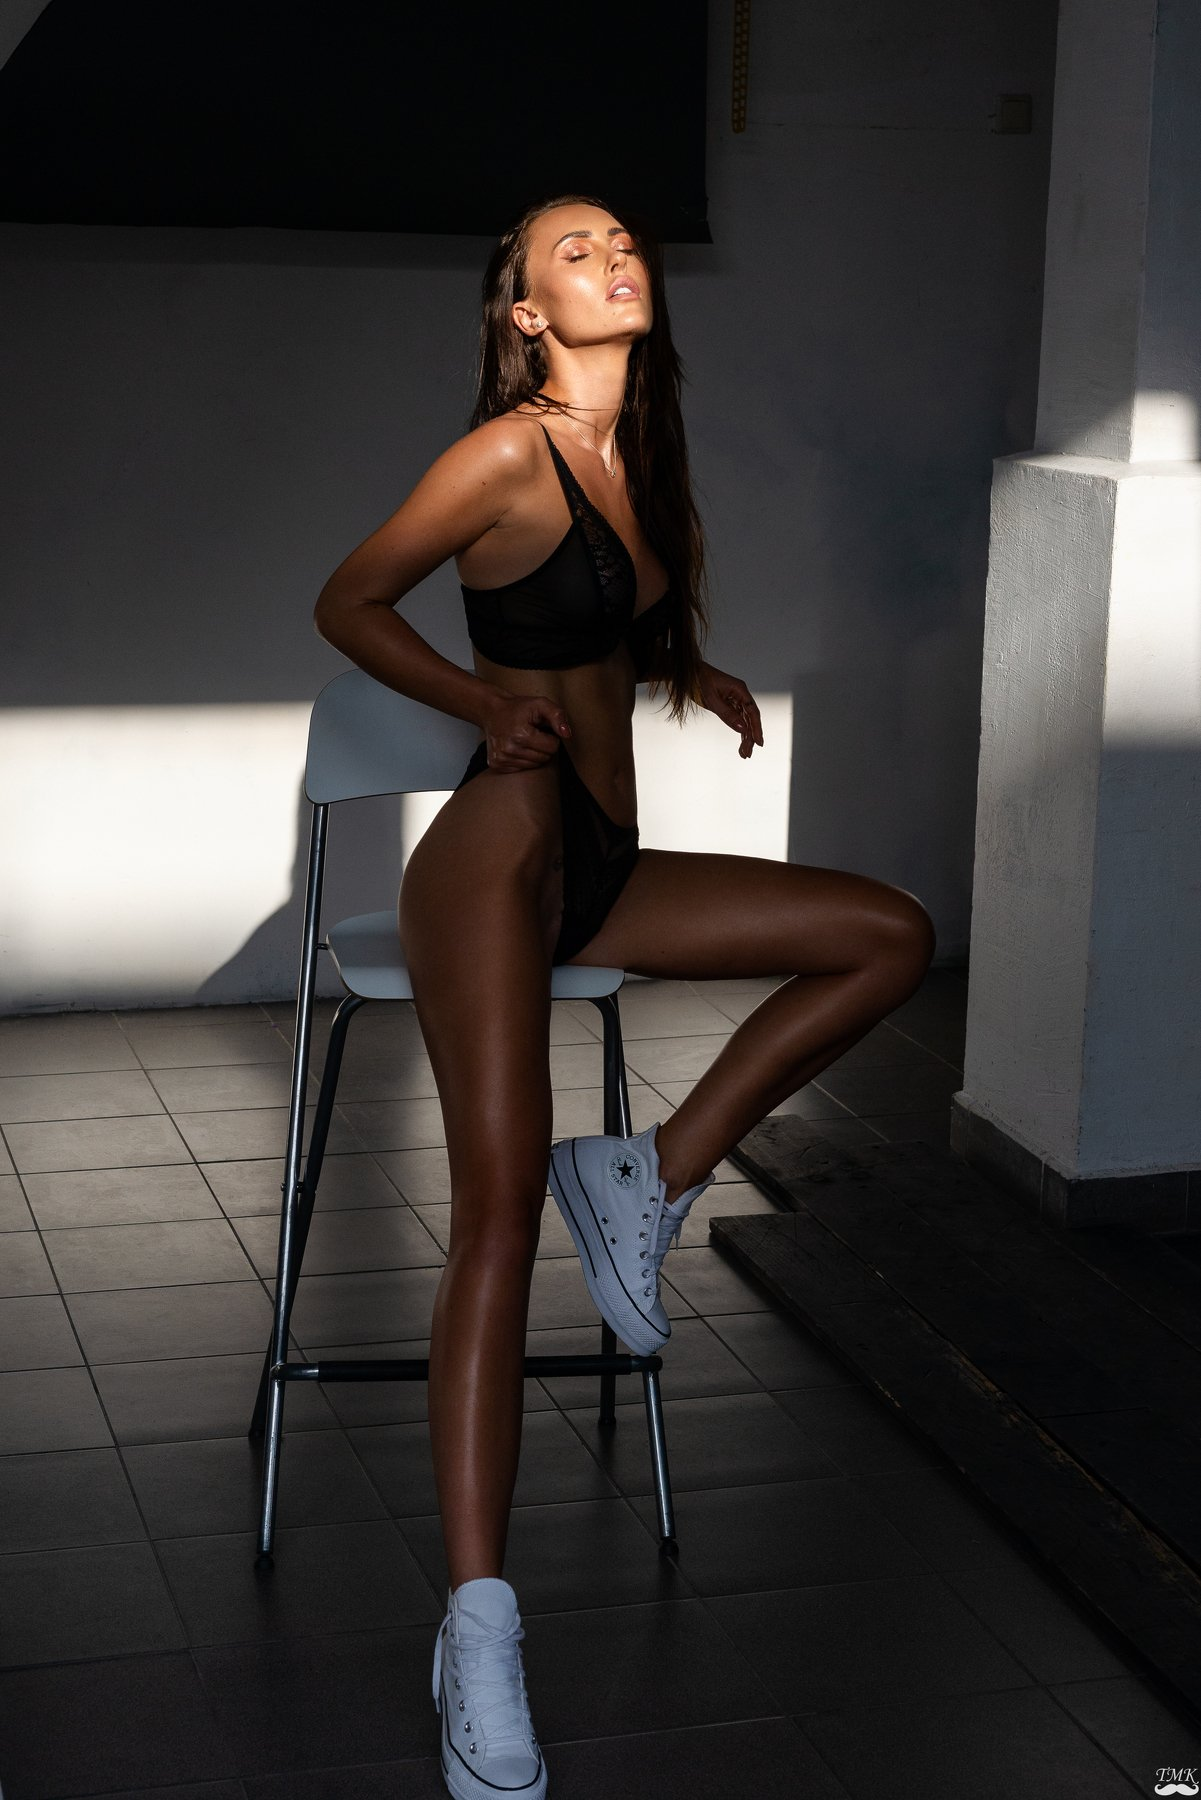 model, portrait, fashion, girl, sun, sunny, warm, colors, legs, underwear, people, brunette, sexy, shadow, Masoit Tomas